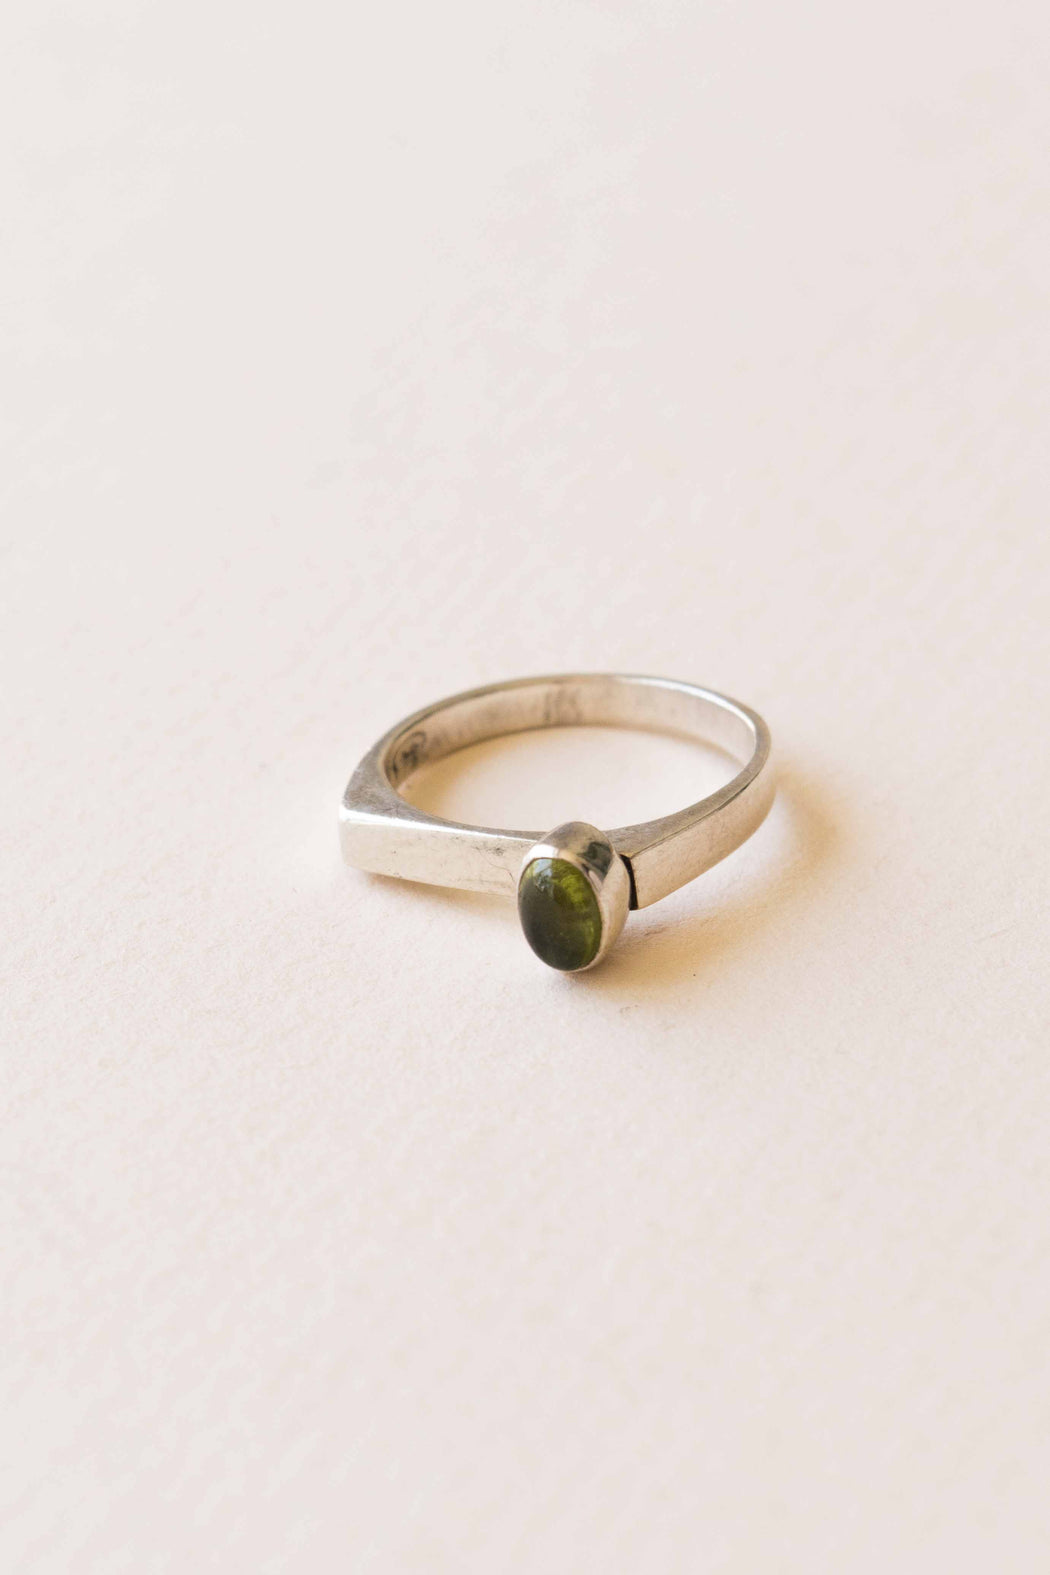 Sterling + Small Peridot Stone Ring - Size 6.5